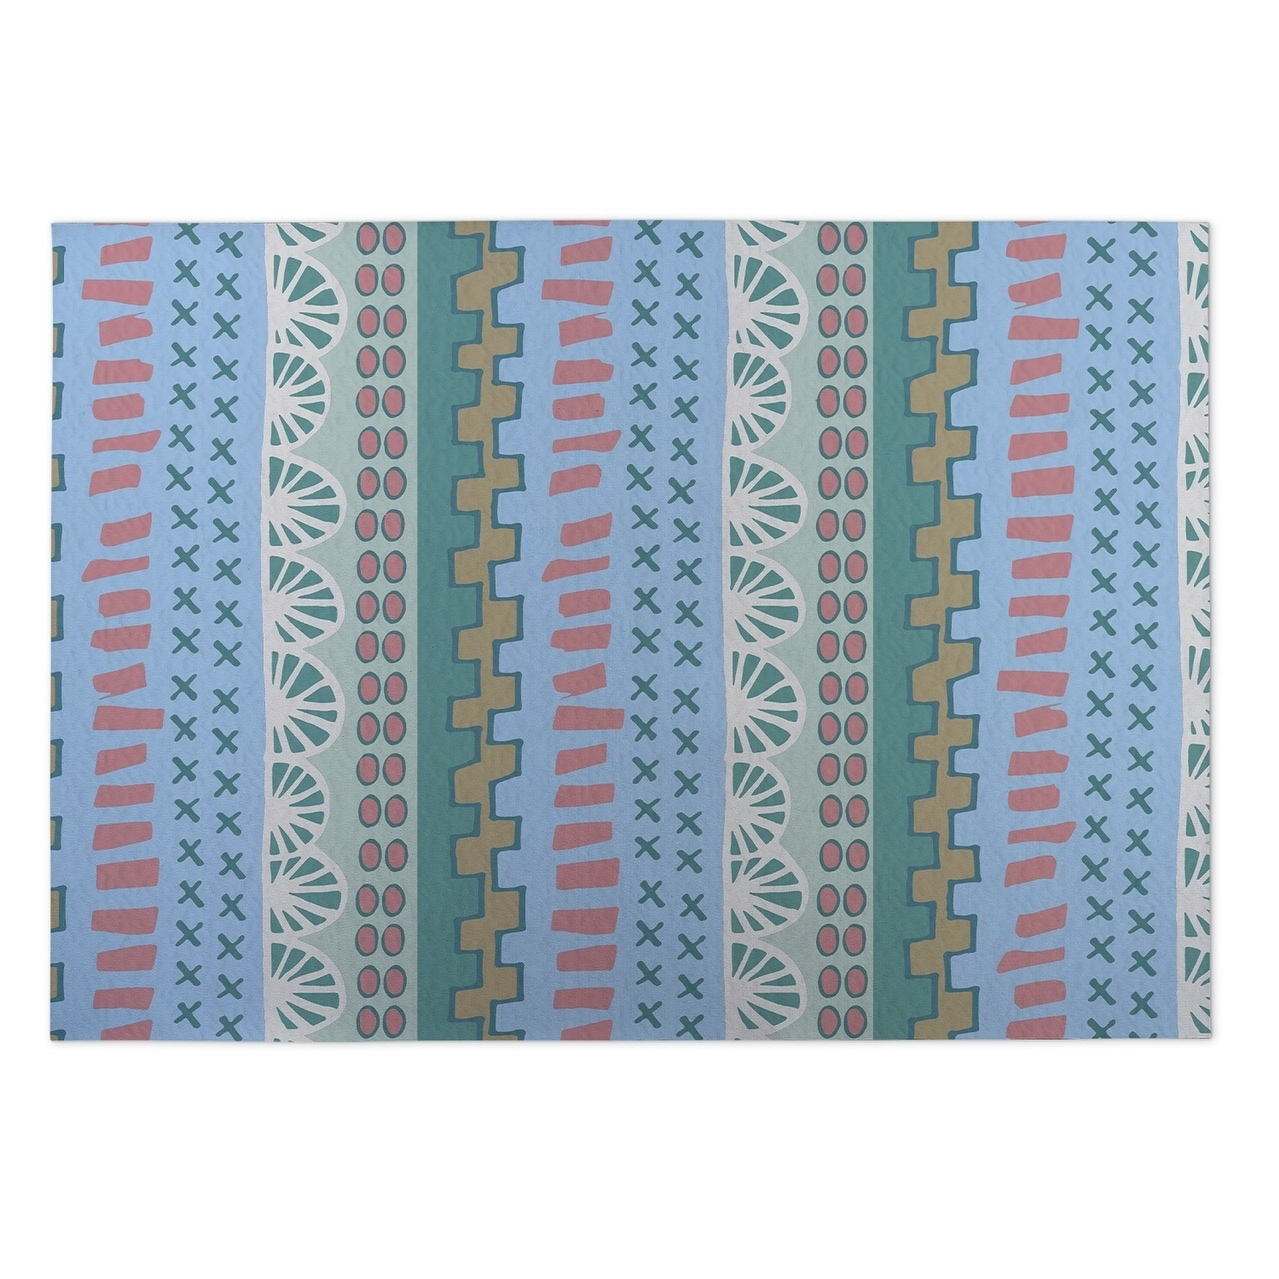 Kavka Designs Blue/ Green Village Road 2 x 3 Indoor/ Outdoor Floor Mat (Blue - N/A - Bohemian & Eclectic)